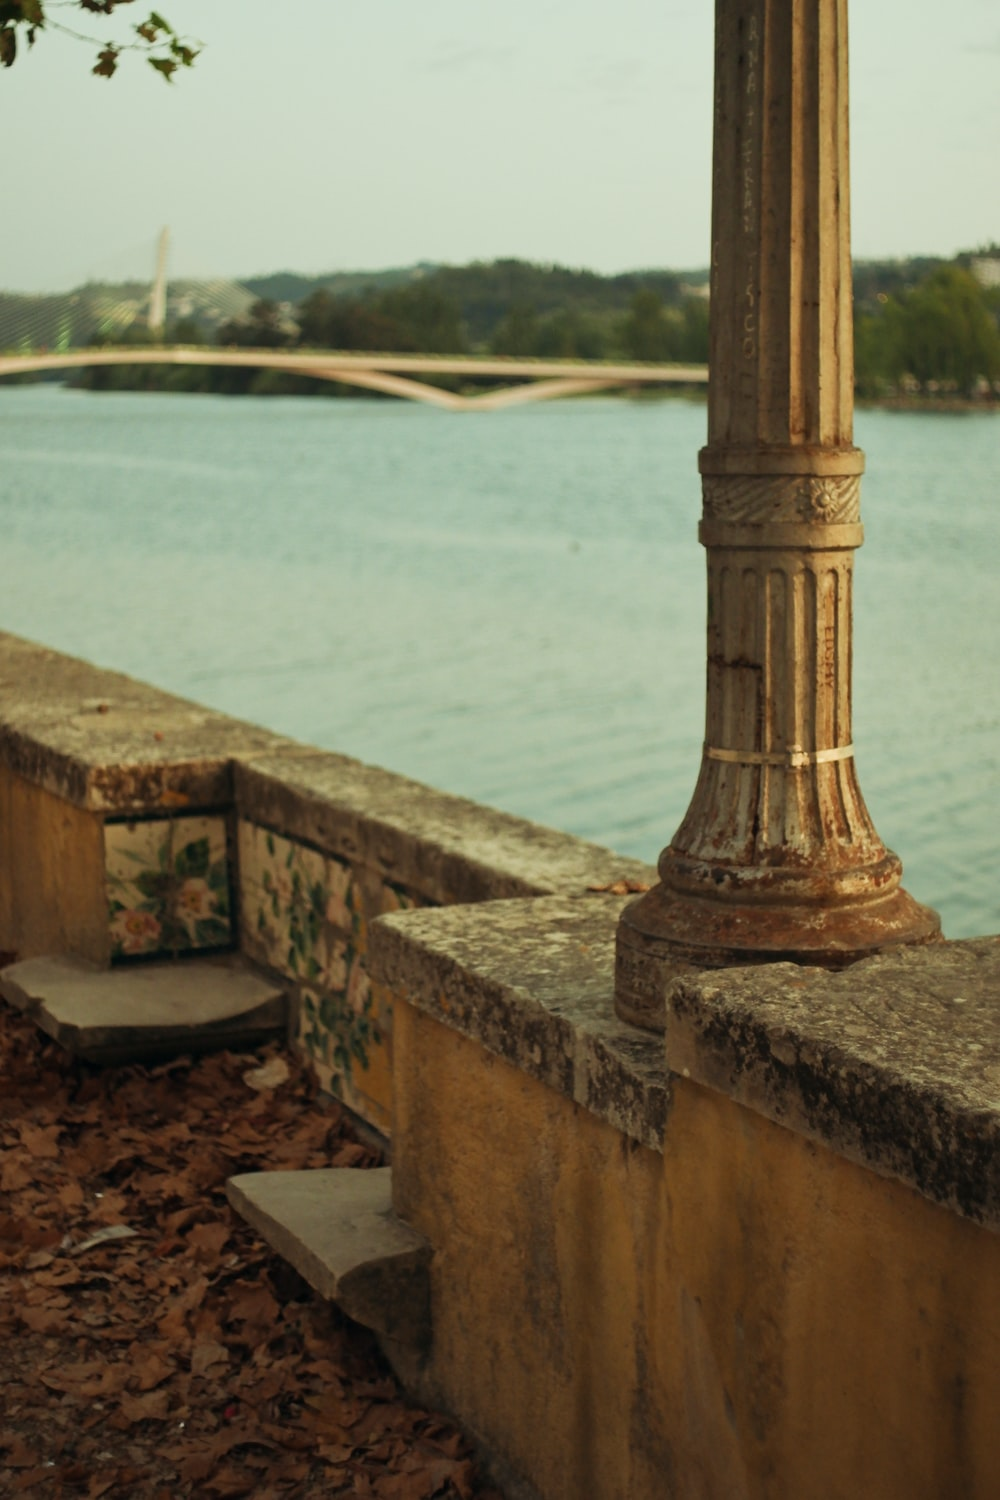 brown concrete post near body of water during daytime